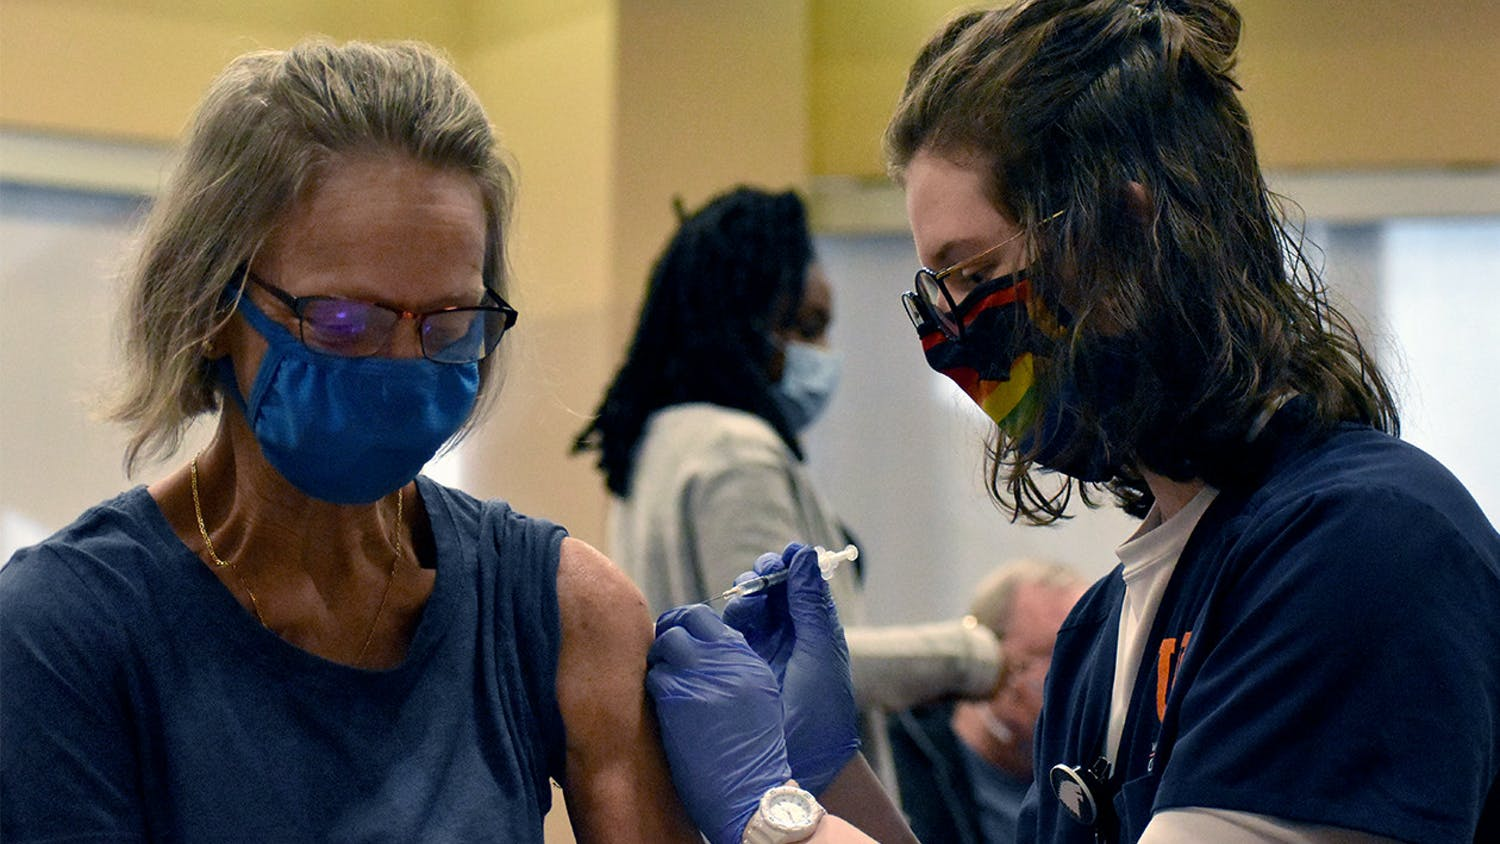 A UF Health nurse prepares to administer a COVID-19 vaccine Friday, Feb.5, 2021.